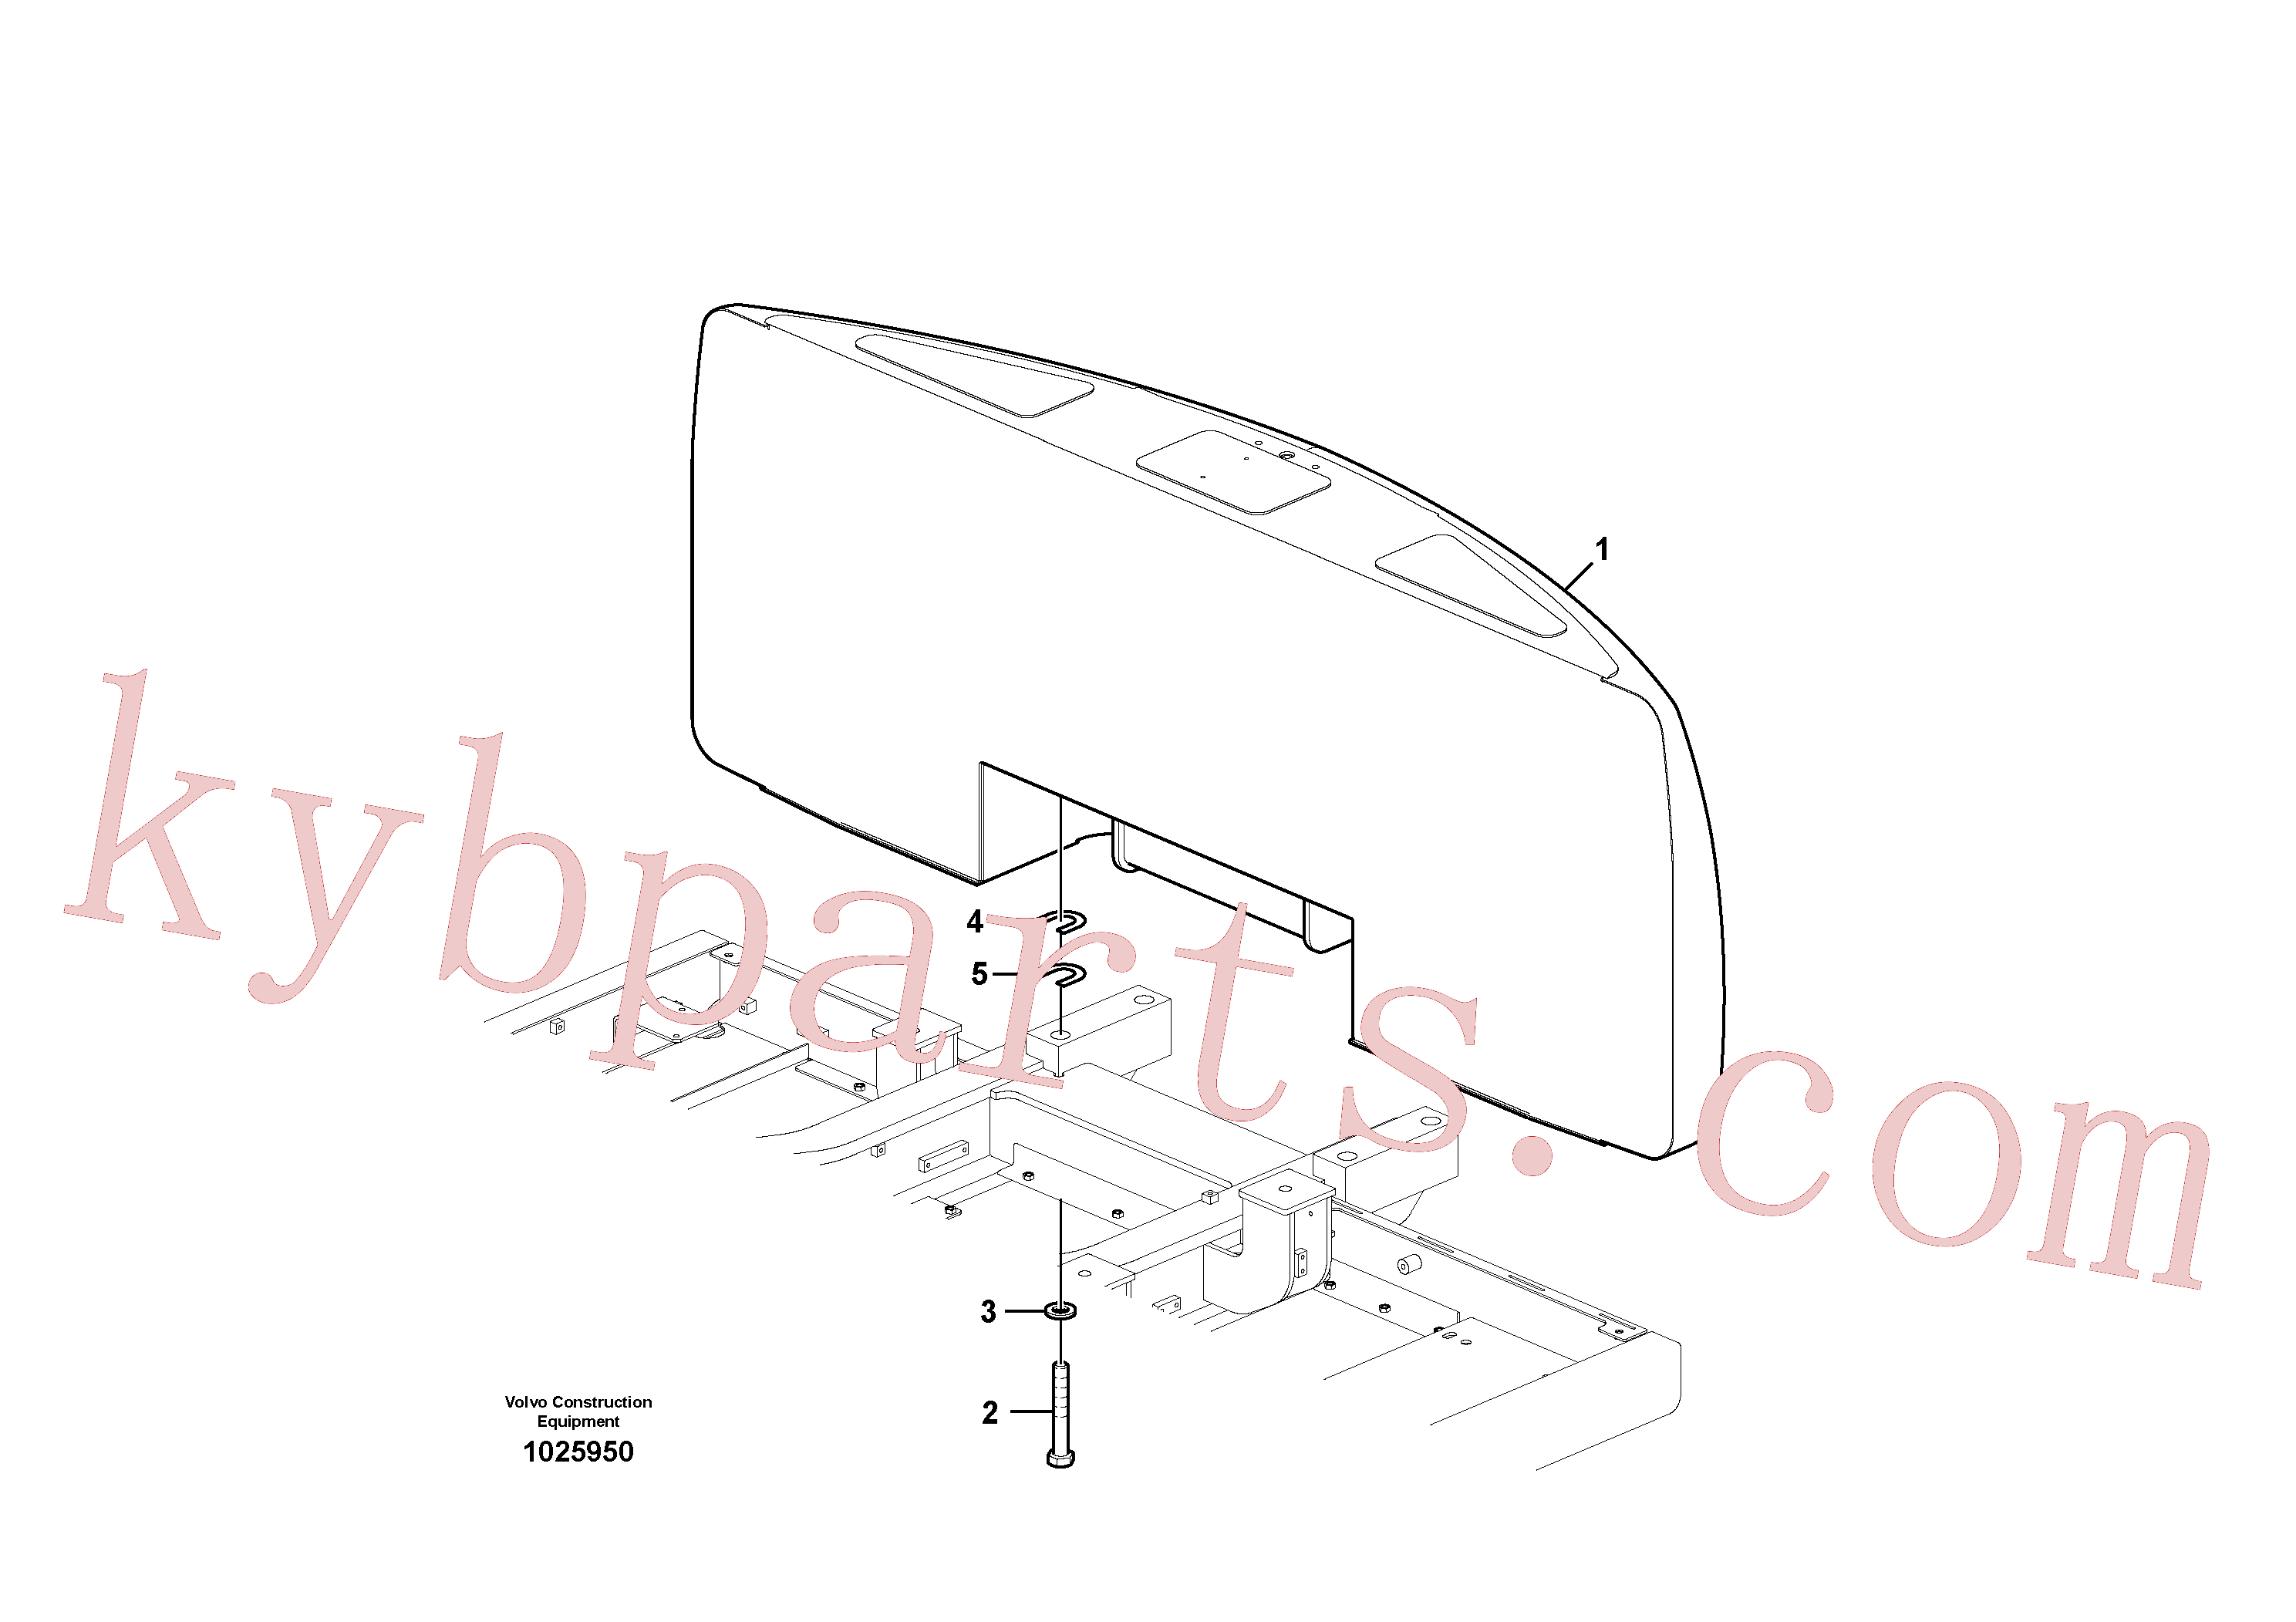 SA9011-23028 for Volvo Counterweights(1025950 assembly)